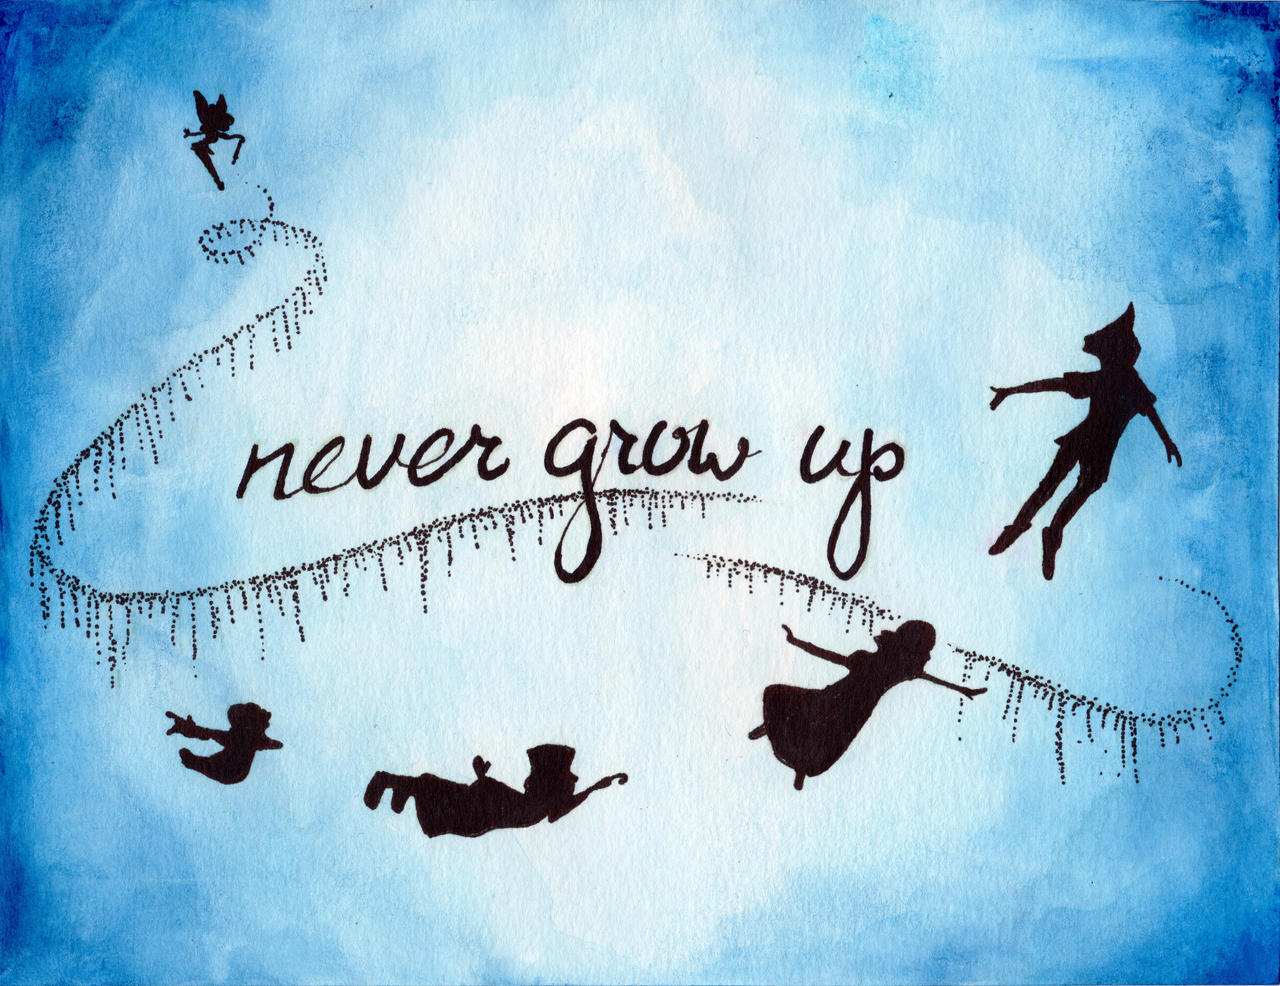 never growing up Avril lavigne - here's to never growing up lyrics singing radiohead at the top of our lungs with the boom box blaring as we're falling in love got a bottle of whatever, but it's getting us d.